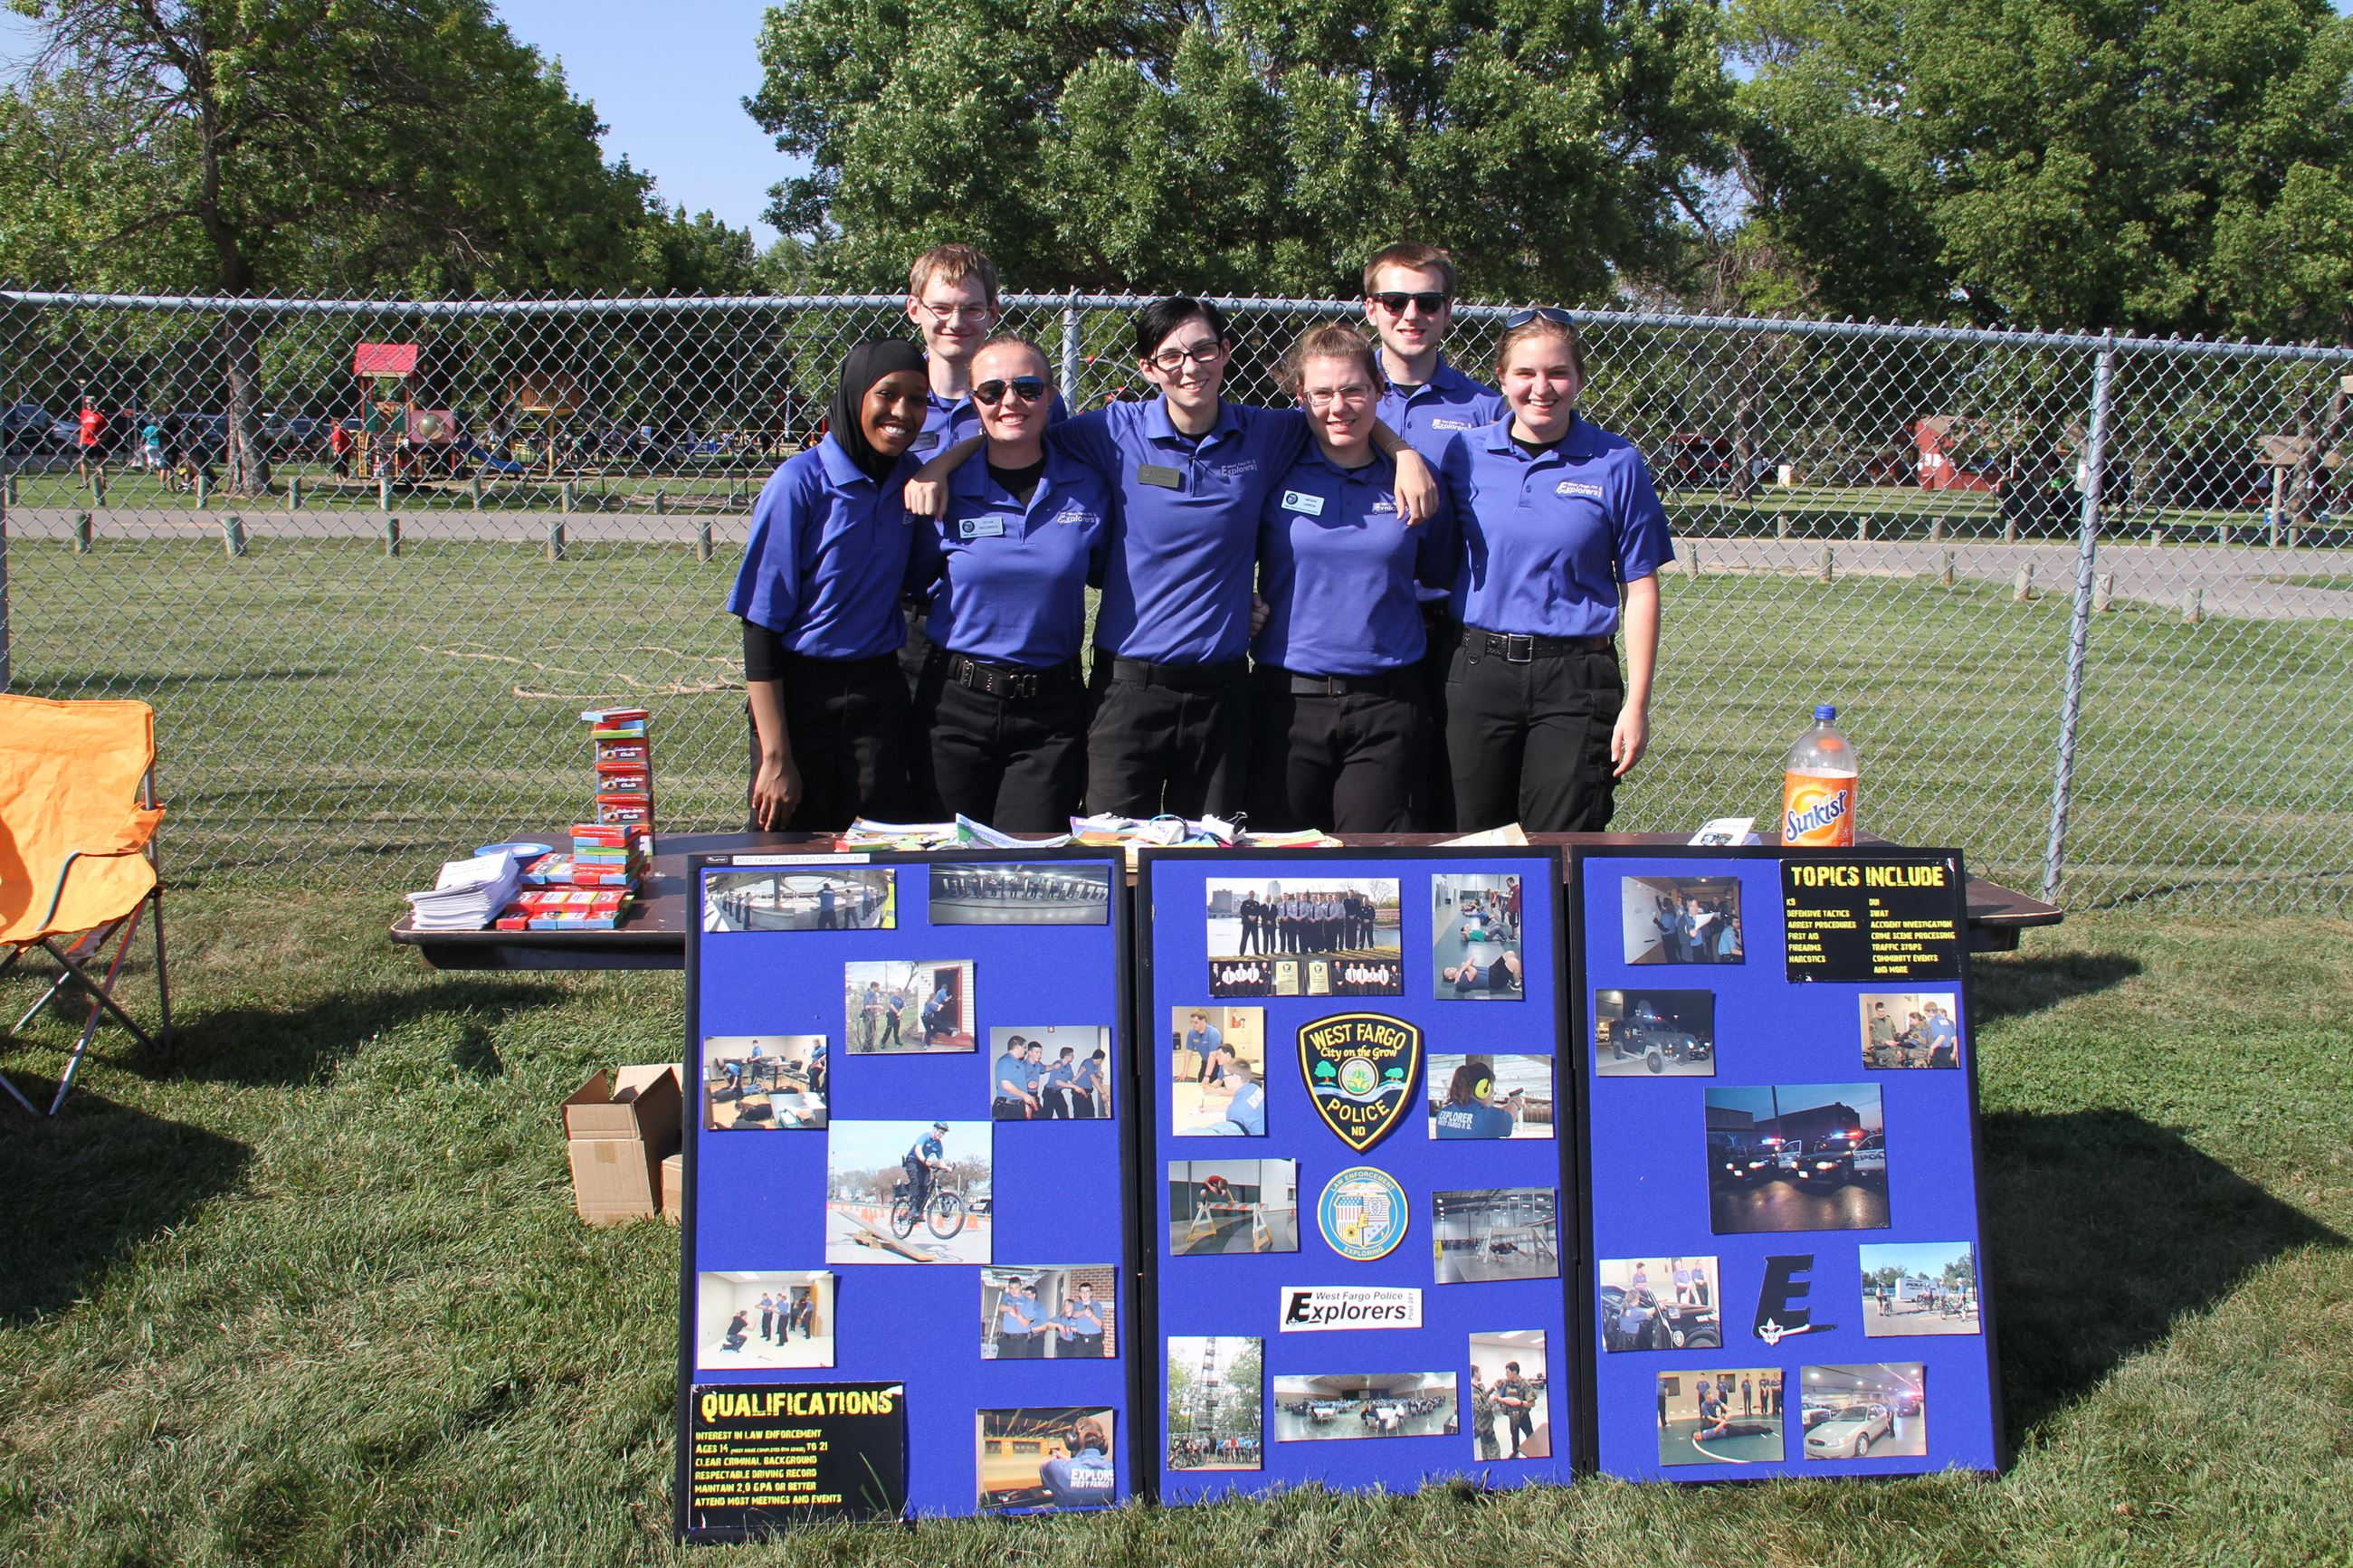 West Fargo Police Explorers inform attendees of their program